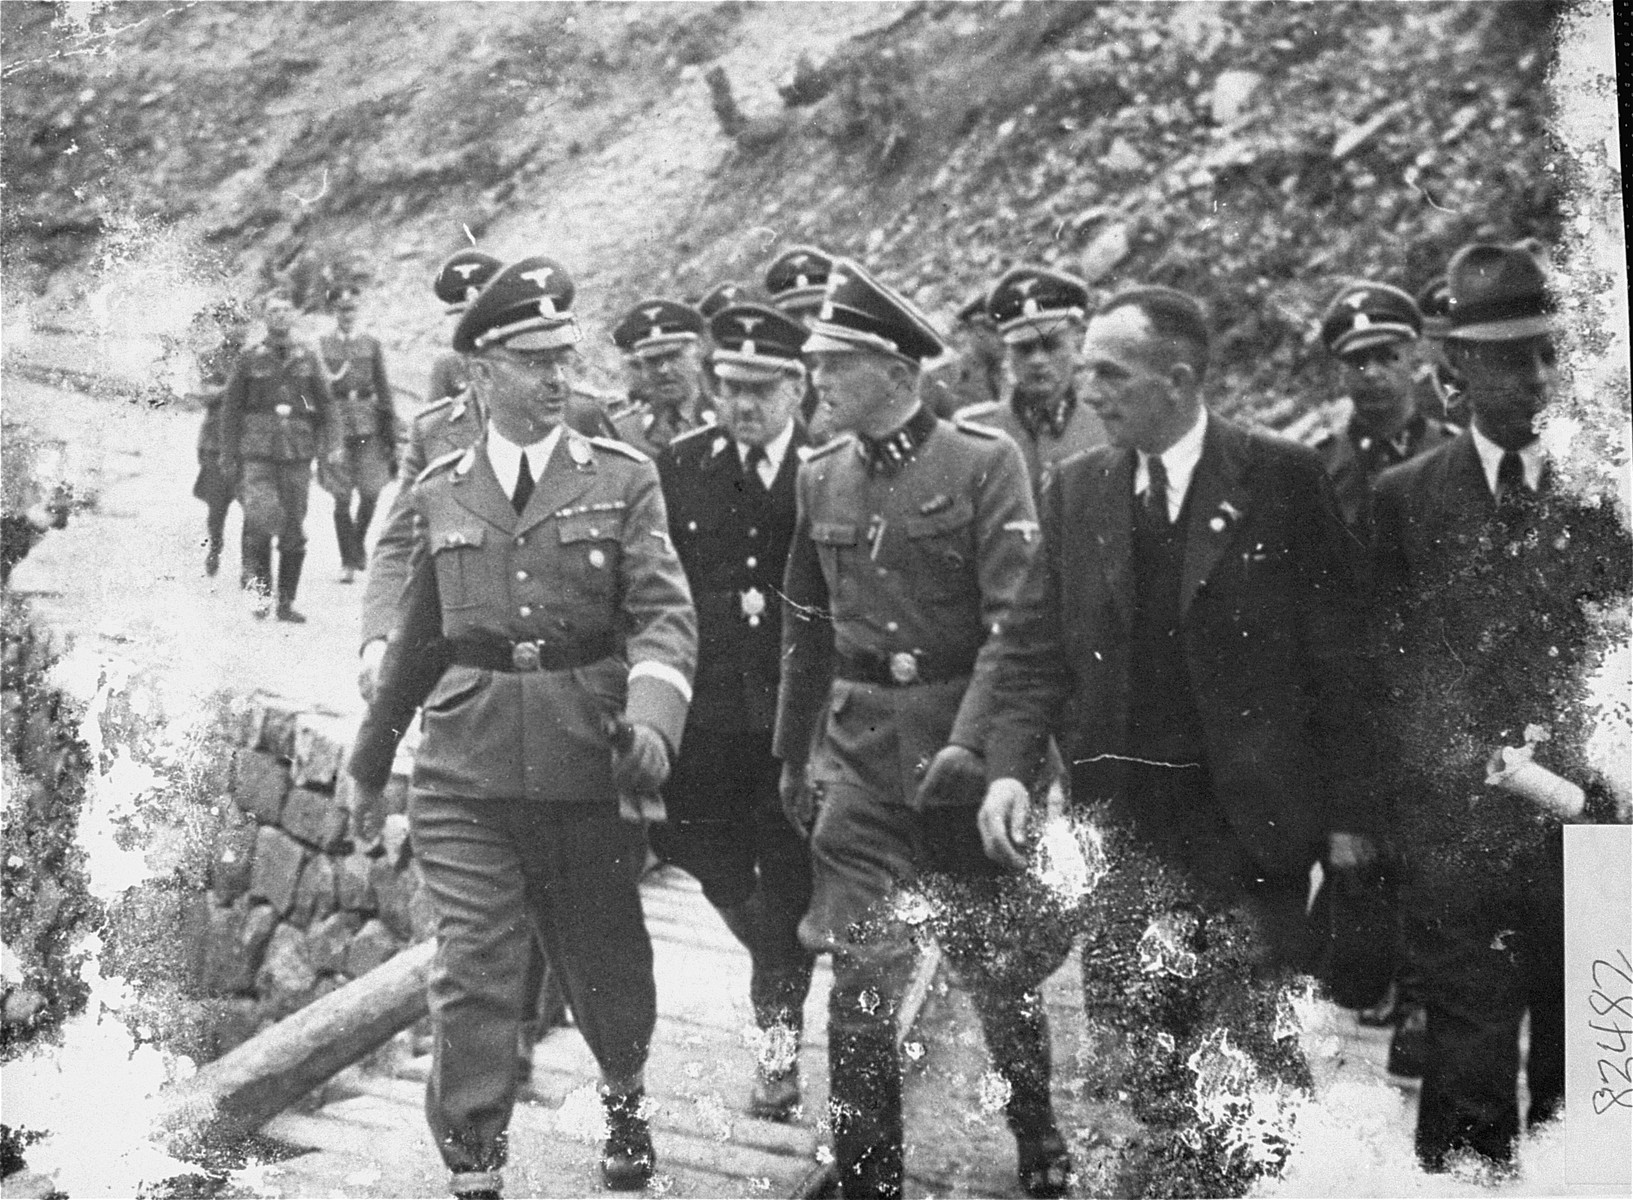 Reichsfuehrer SS Heinrich Himmler and his entourage inspect the Wiener Graben quarry during an official tour of the Mauthausen concentration camp.  Pictured in front from left to right are: Heinrich Himmler,  August Eigruber and Franz Ziereis.  Visible between and behind Himmler and Eigruber is Oswald Pohl.